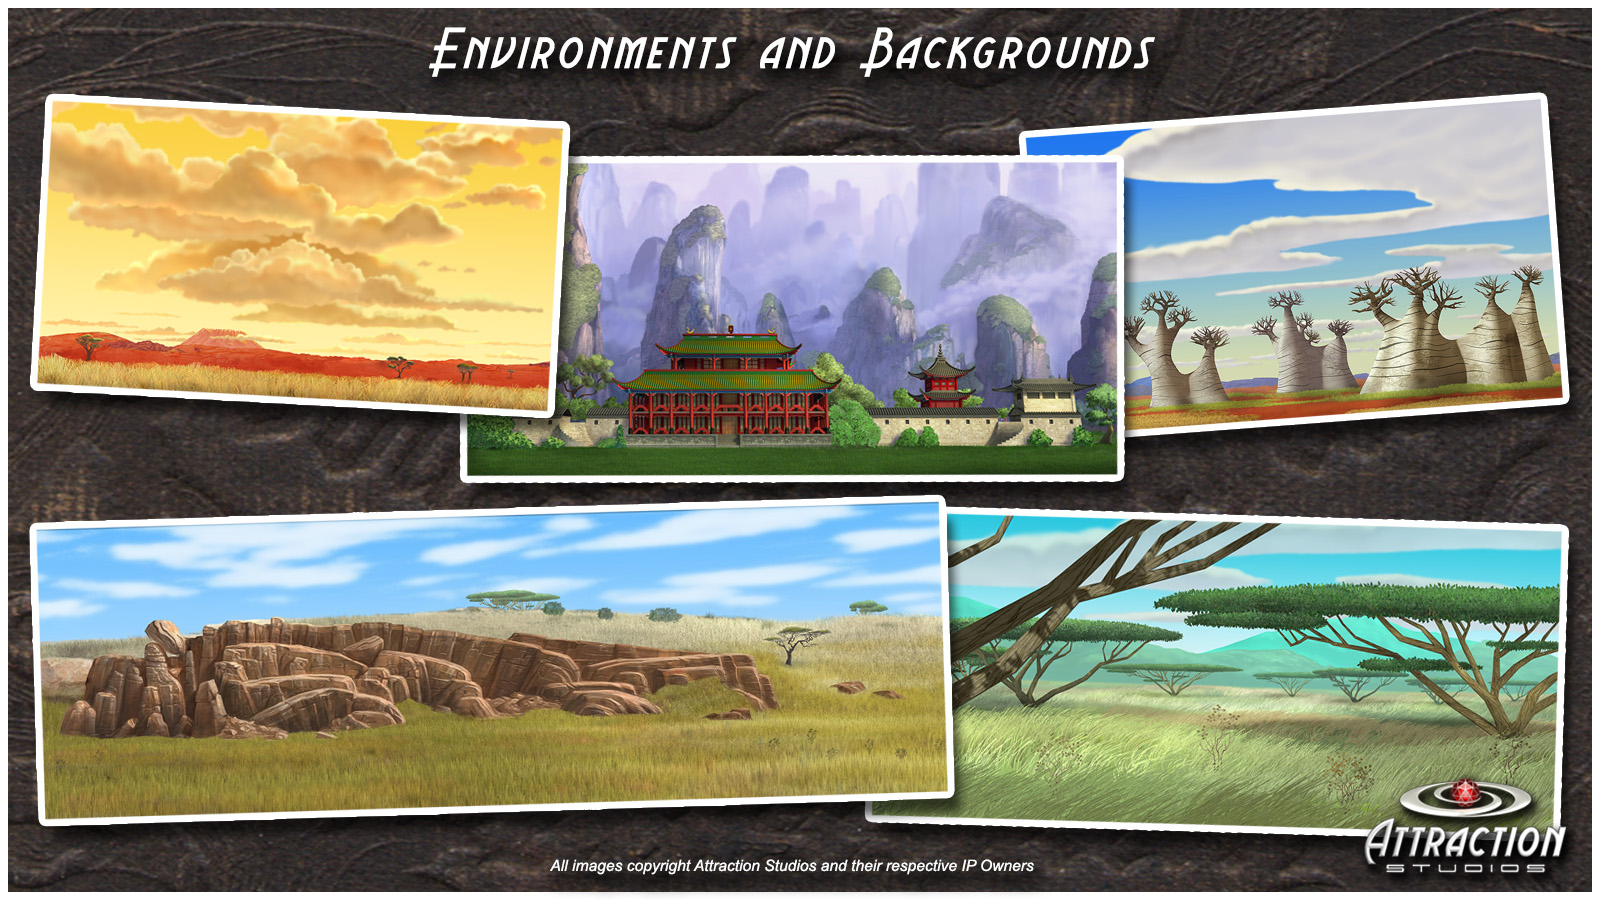 Environments and Backgrounds B 16x9